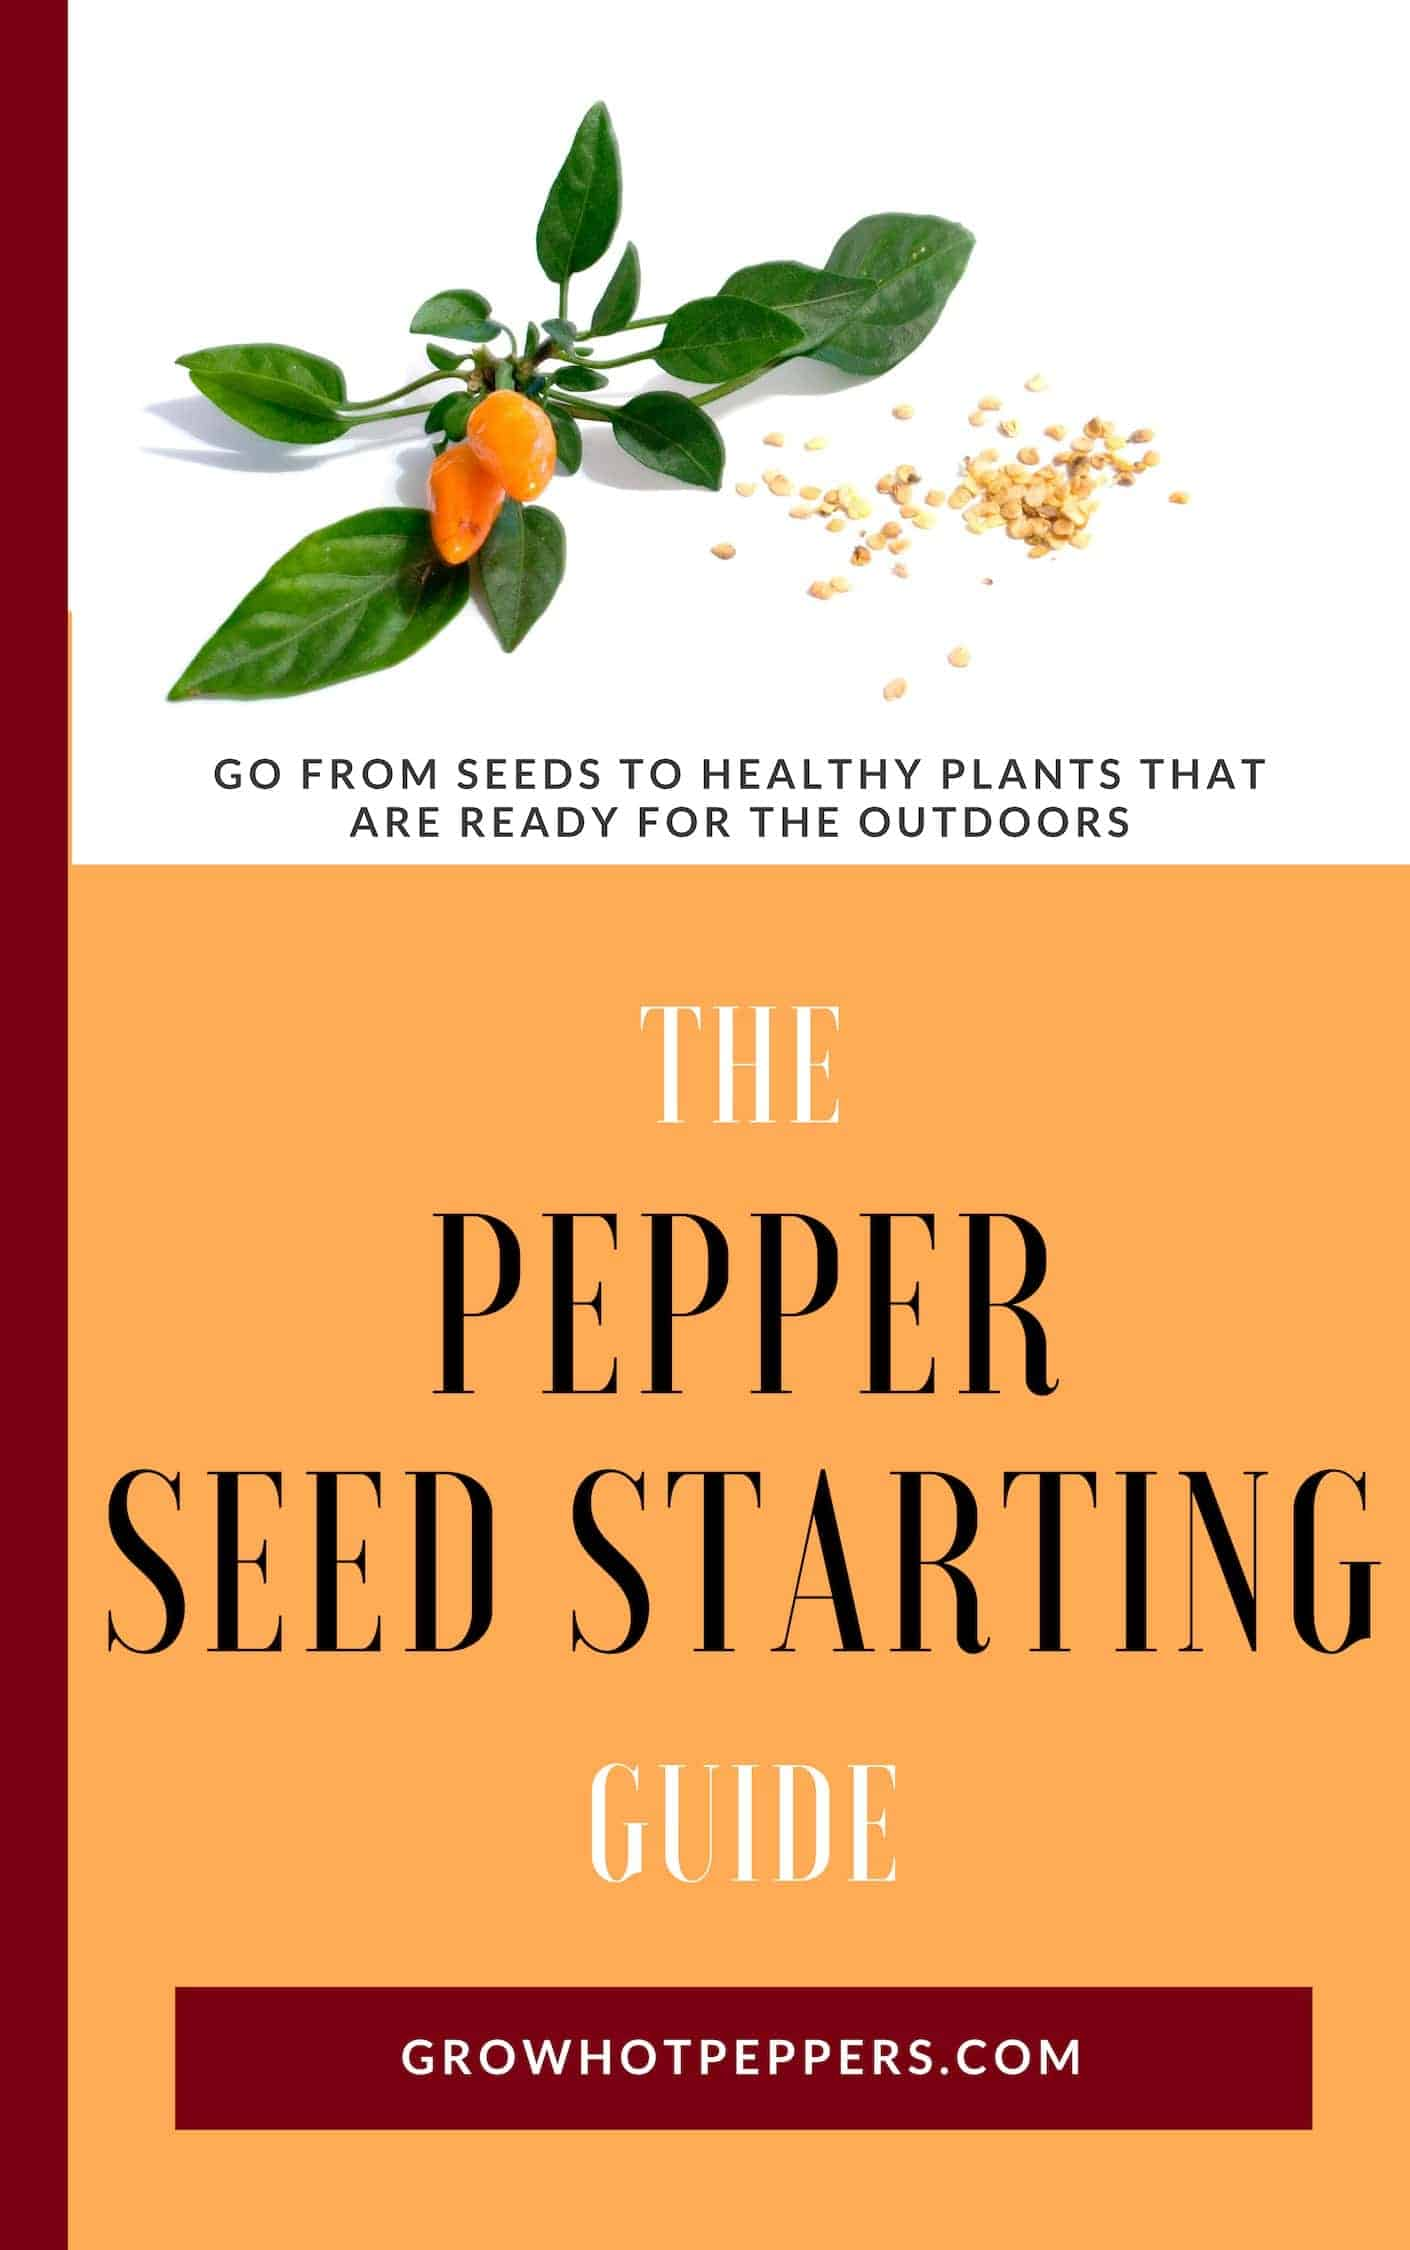 The Pepper Seed Starting Guide Ebook cover